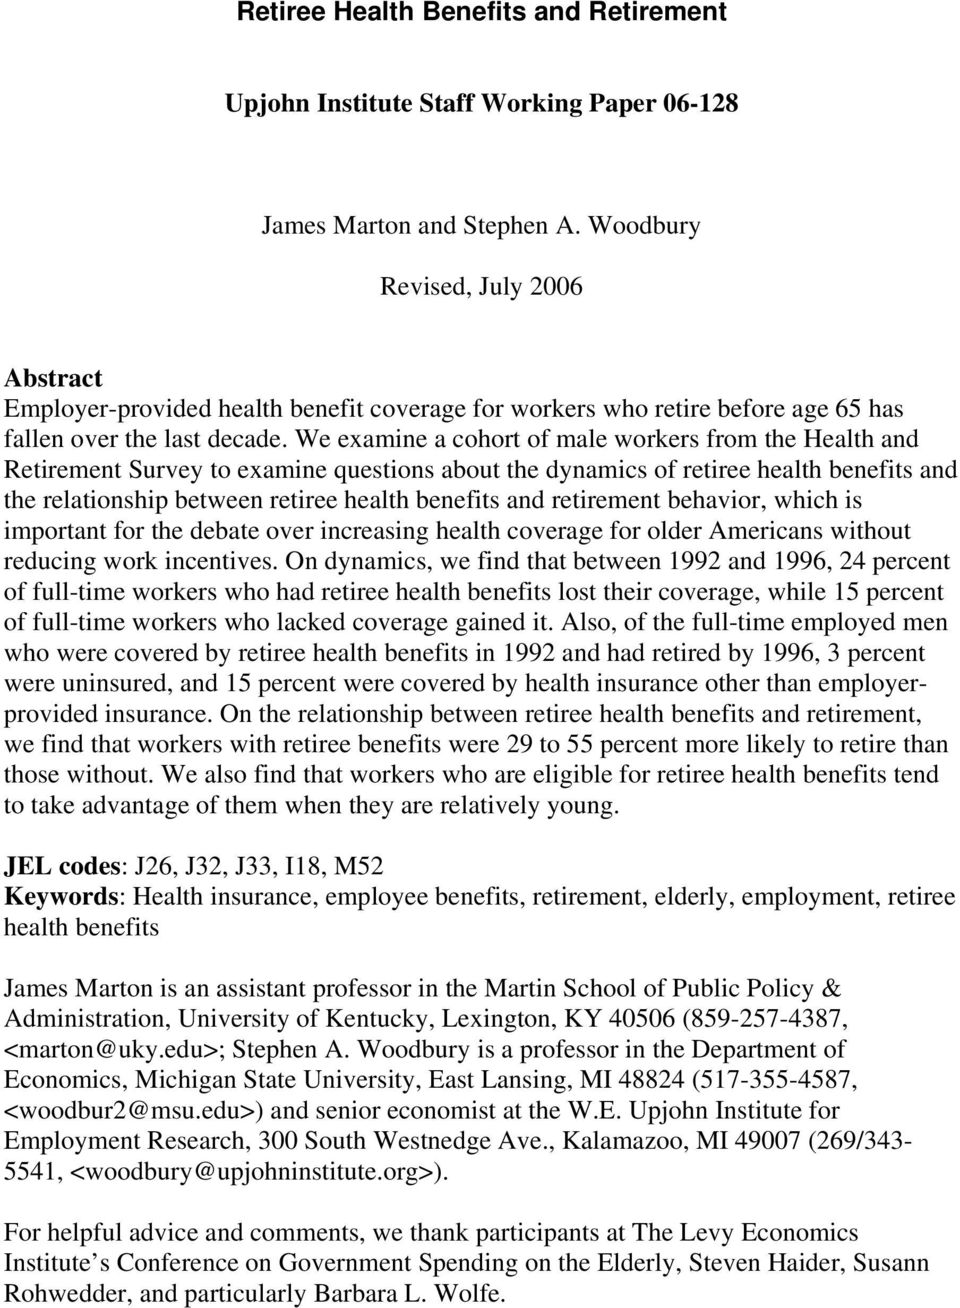 We examine a cohort of male workers from the Health and Retirement Survey to examine questions about the dynamics of retiree health benefits and the relationship between retiree health benefits and